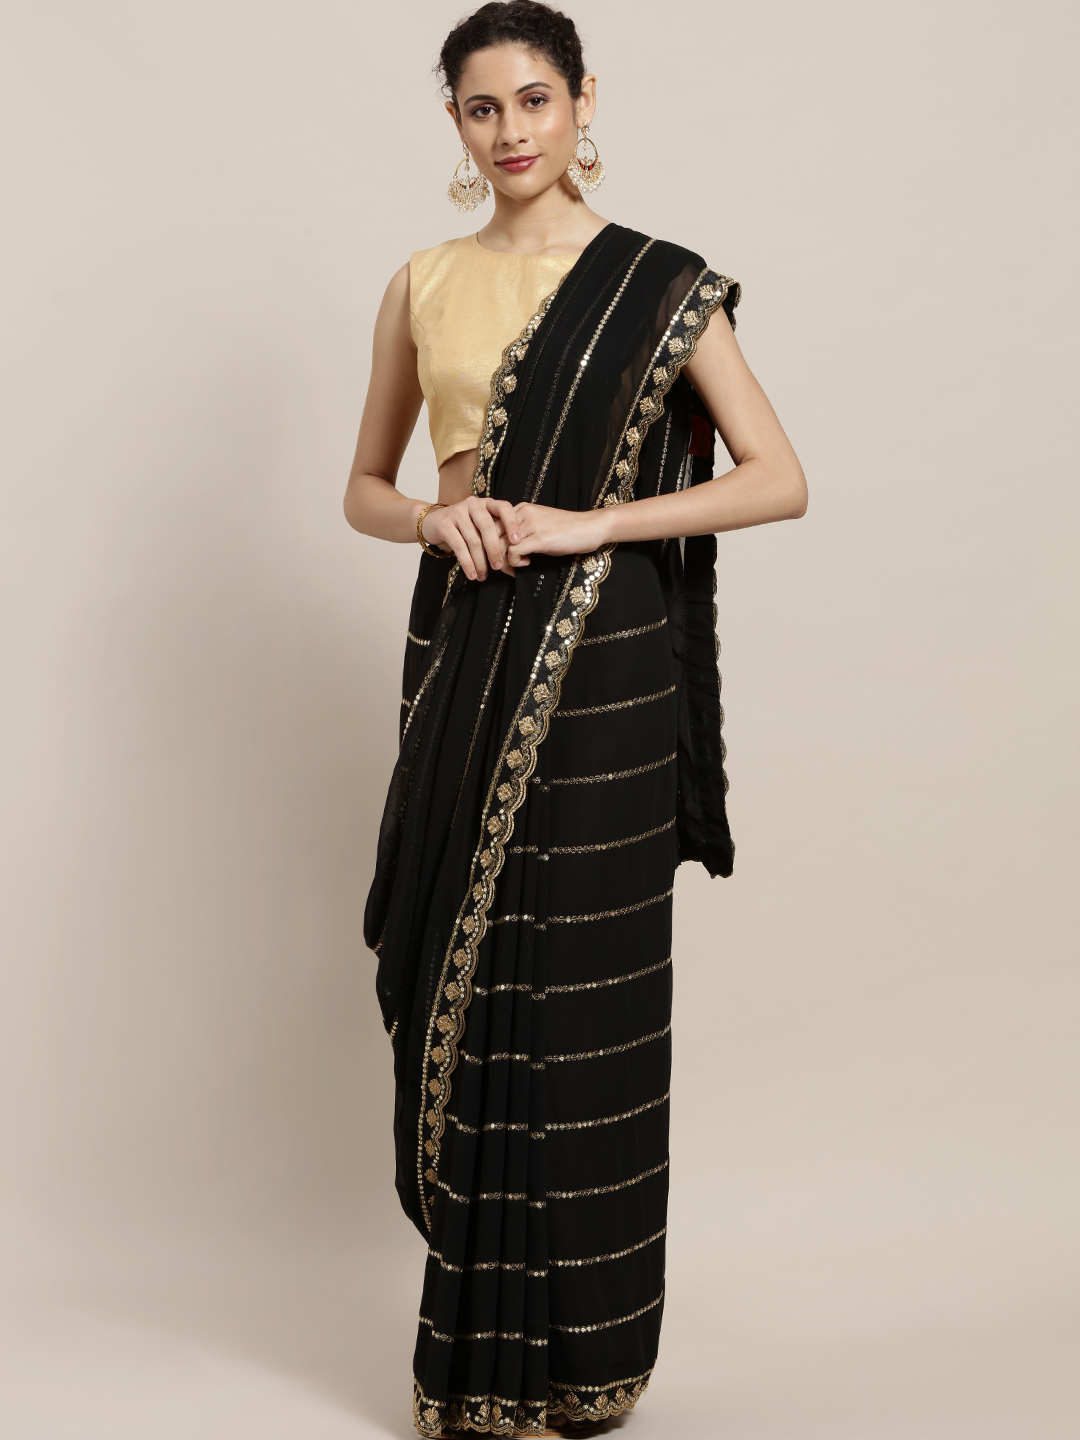 Sugathari Black & Golden Embroidered Poly Georgette Saree Price in India